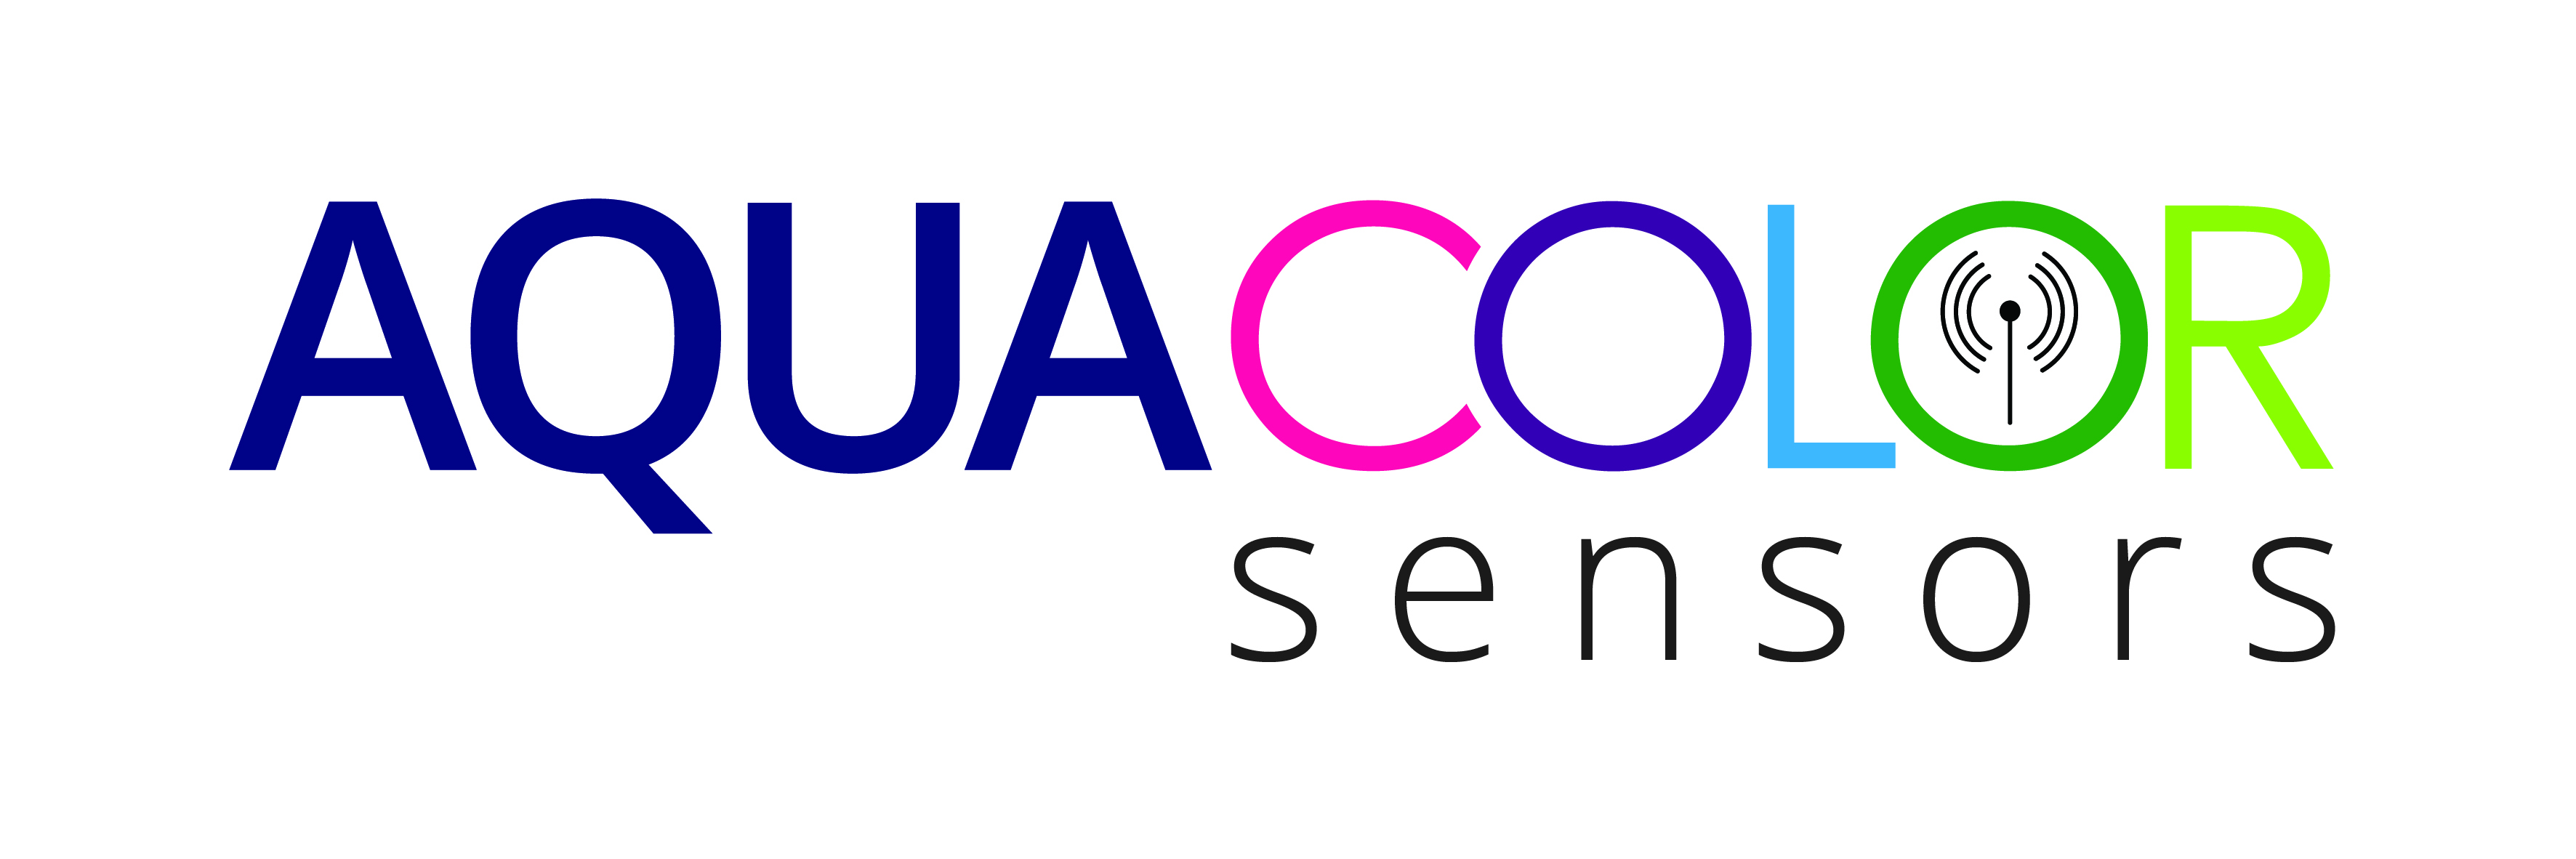 Aquacolor Sensors logo